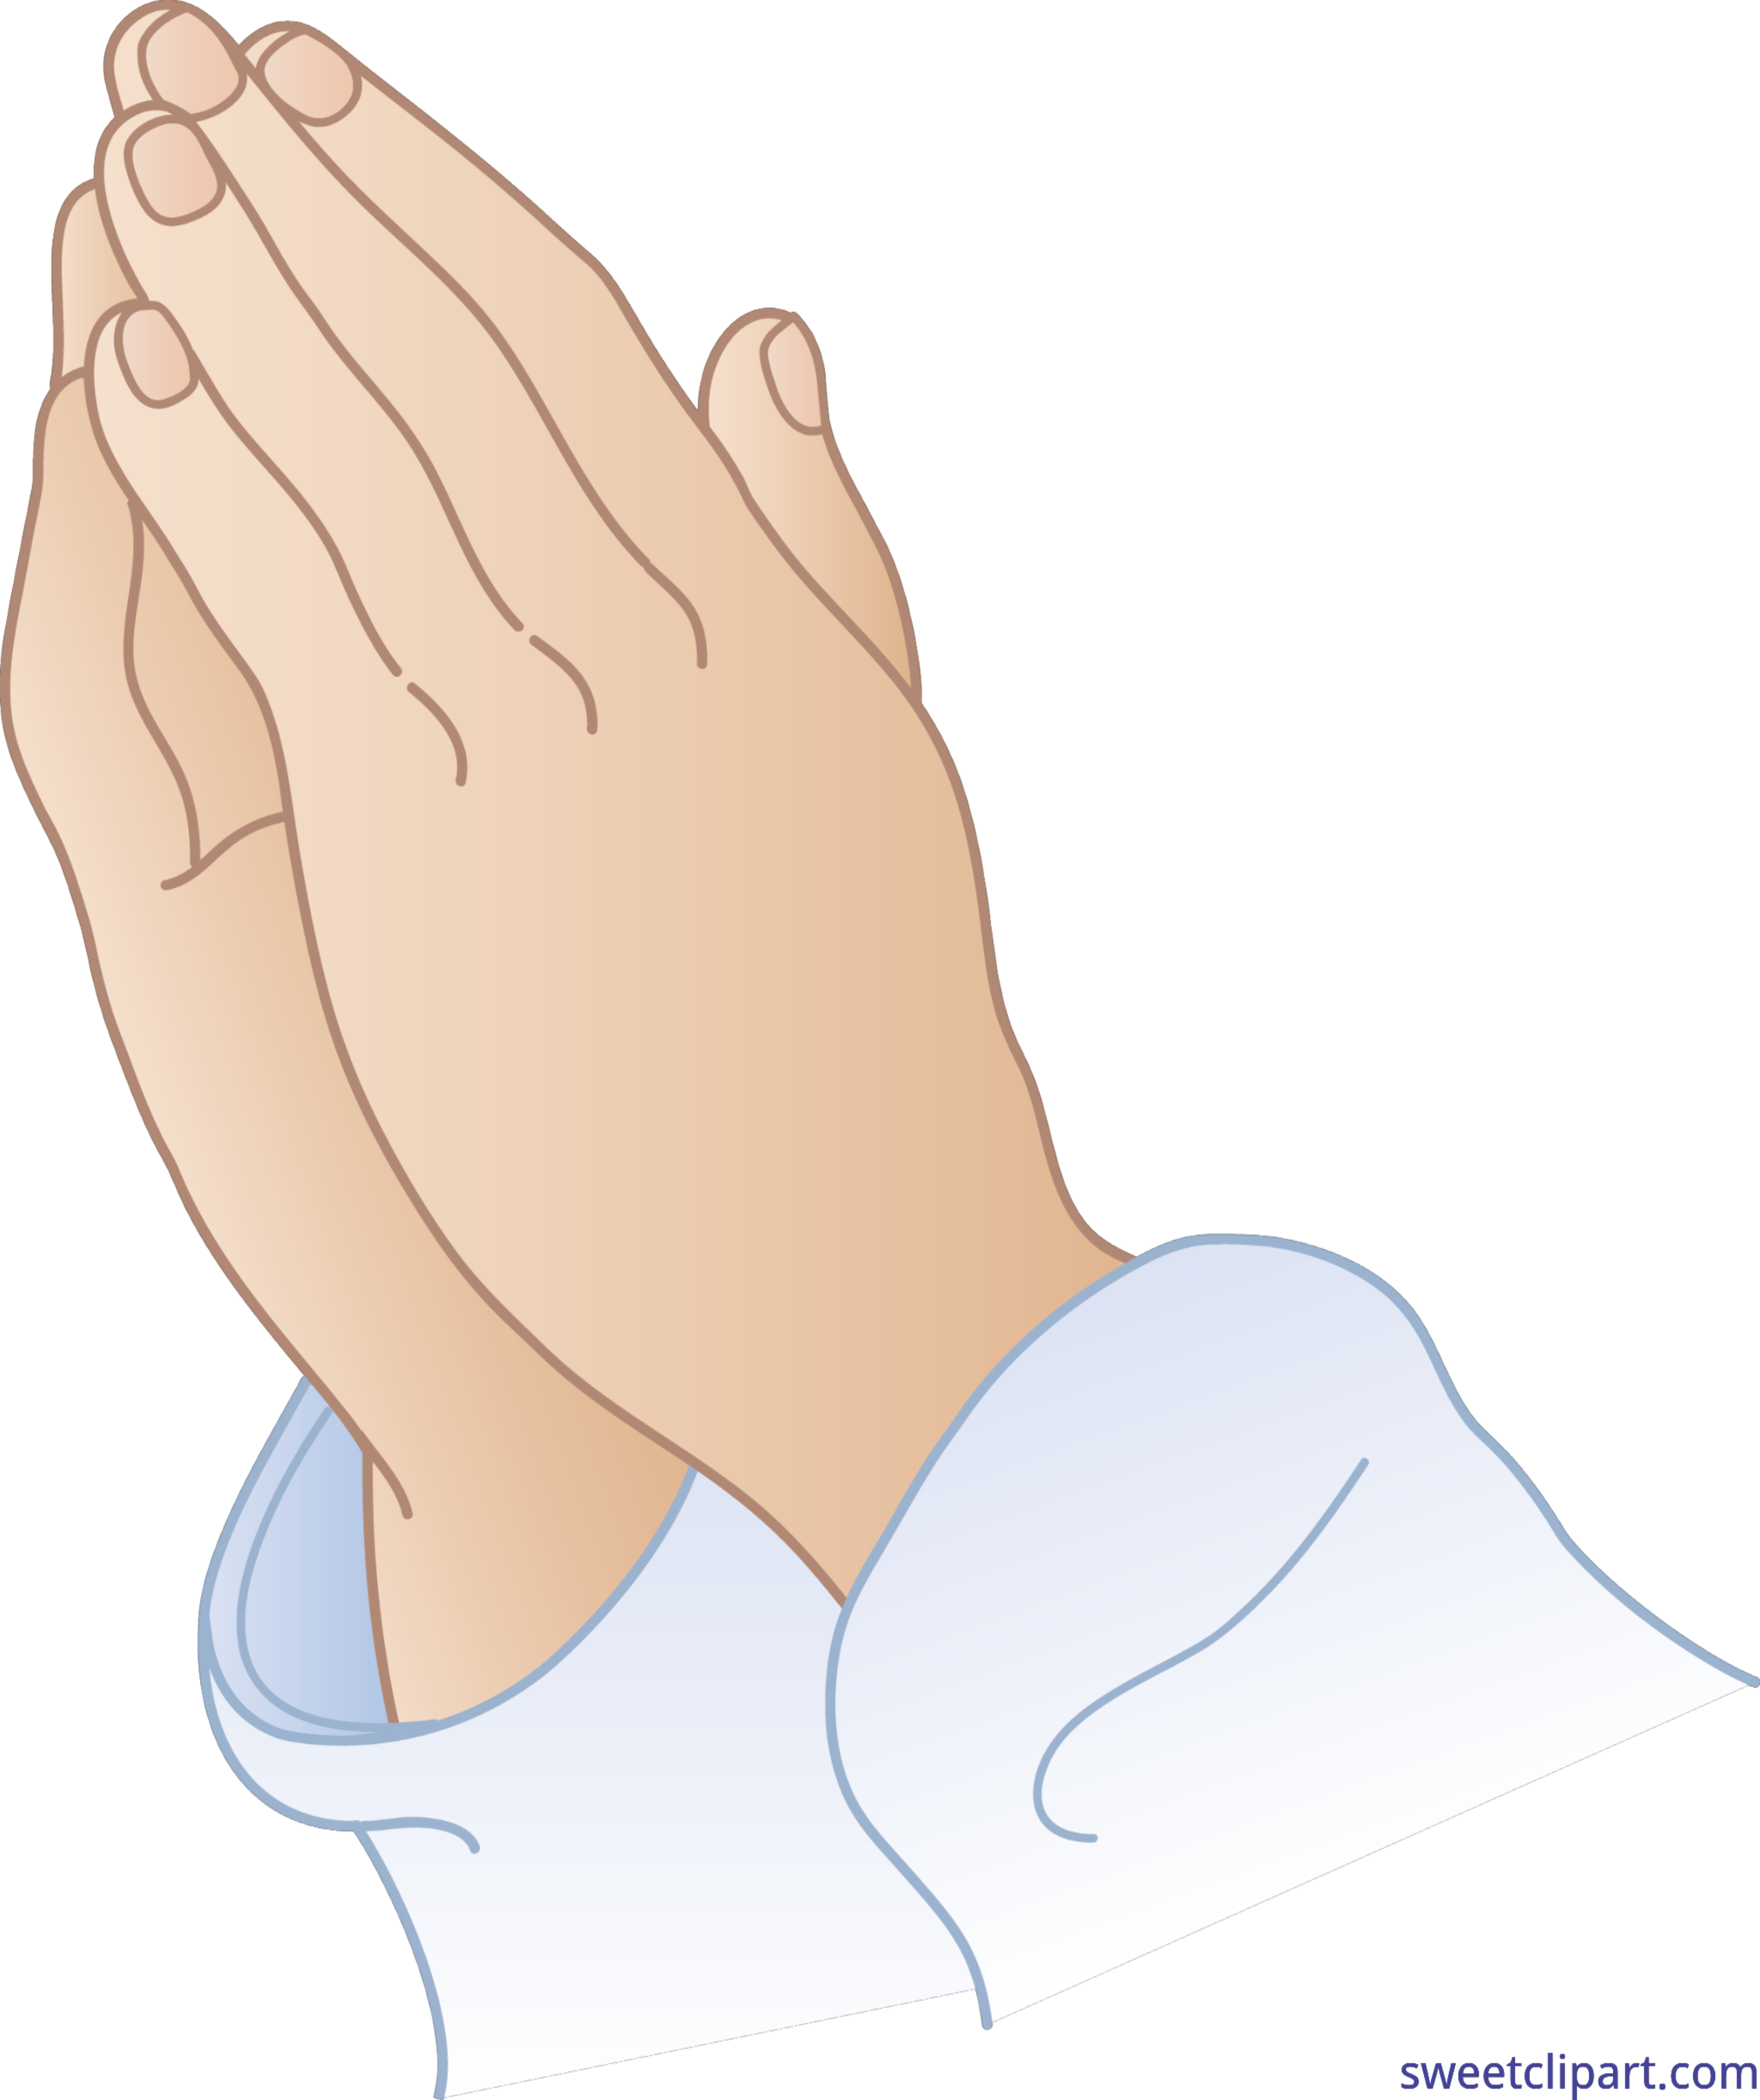 Glove clipart science. Praying hands clip art